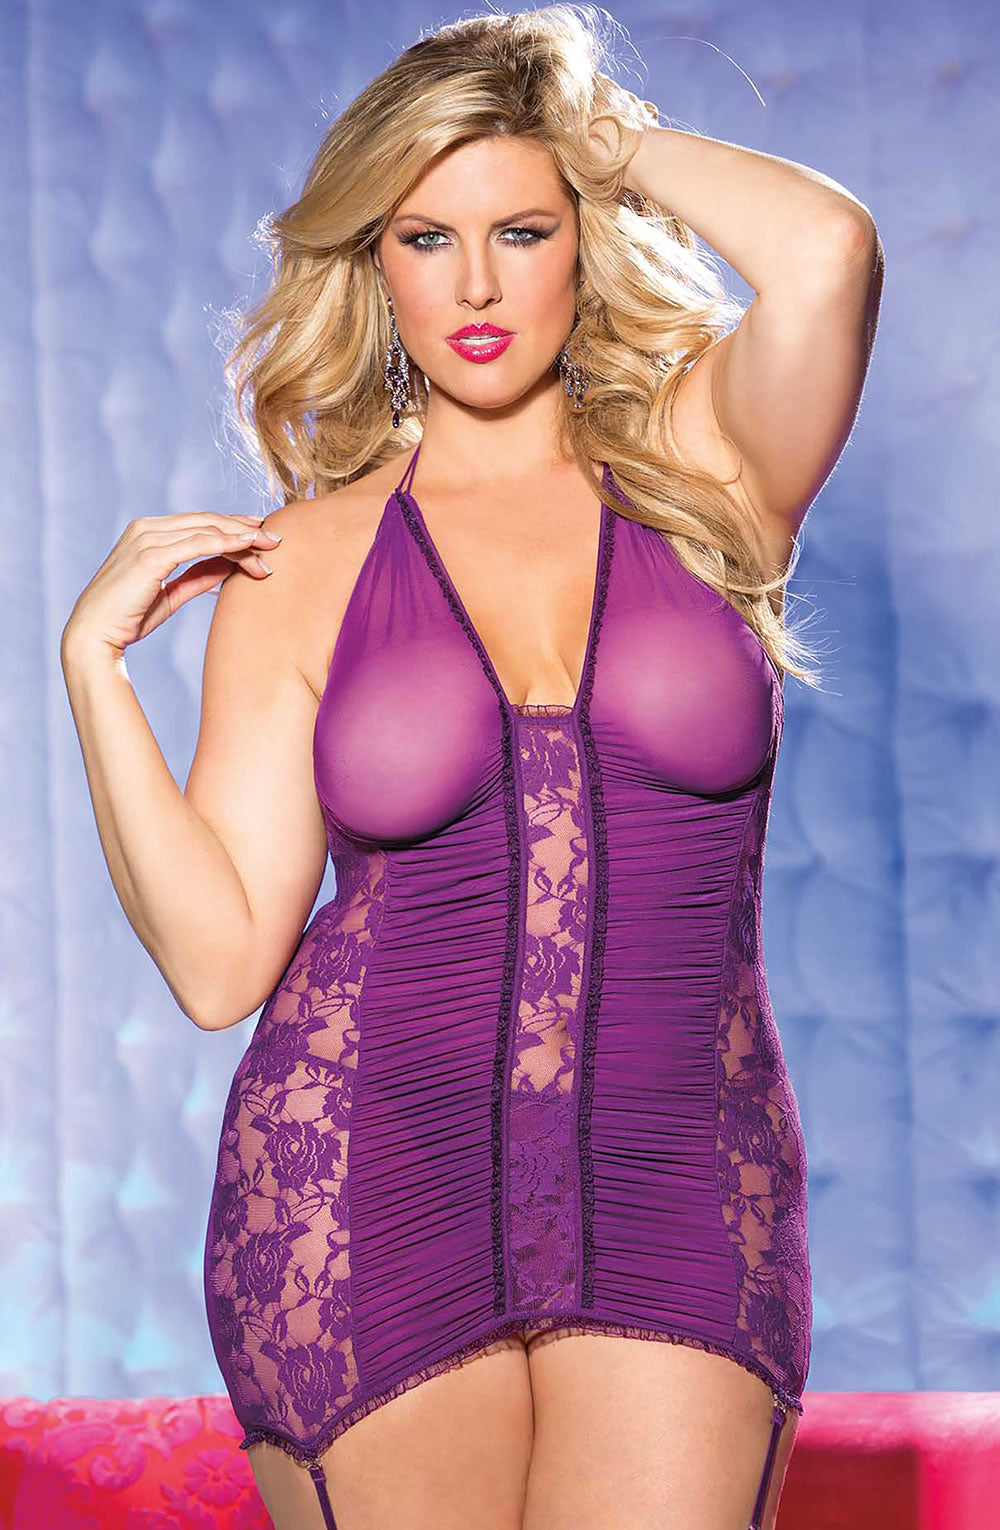 Purple Stretch Mesh and Lace Gartered Chemise Matching G-string